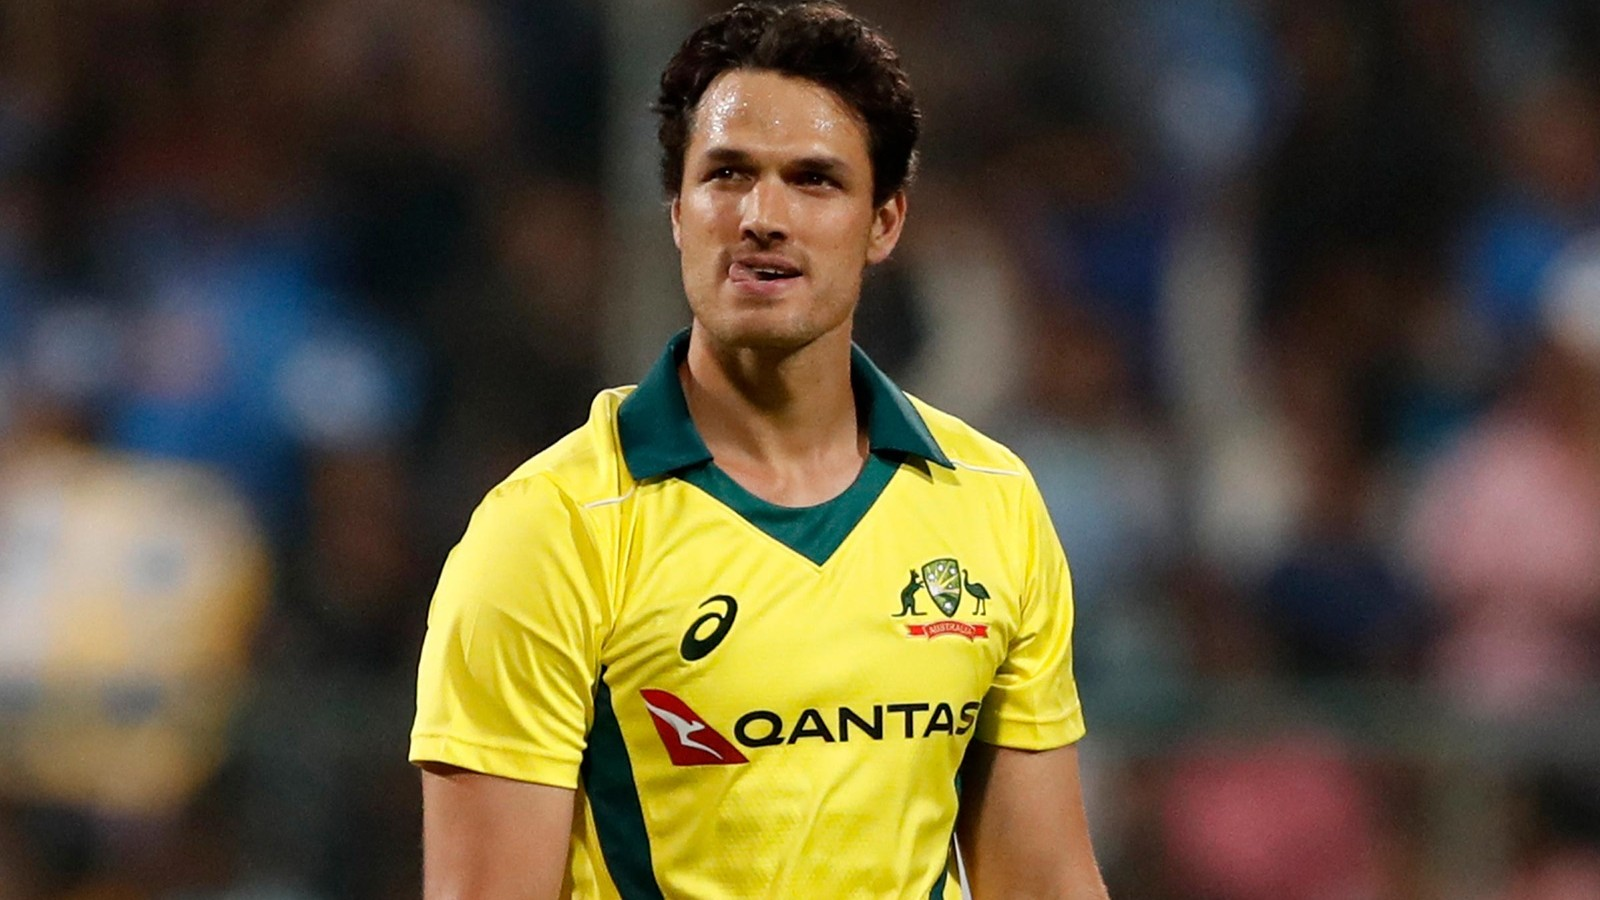 Nathan Coulter-Nile accepts his Australia career is coming to an end